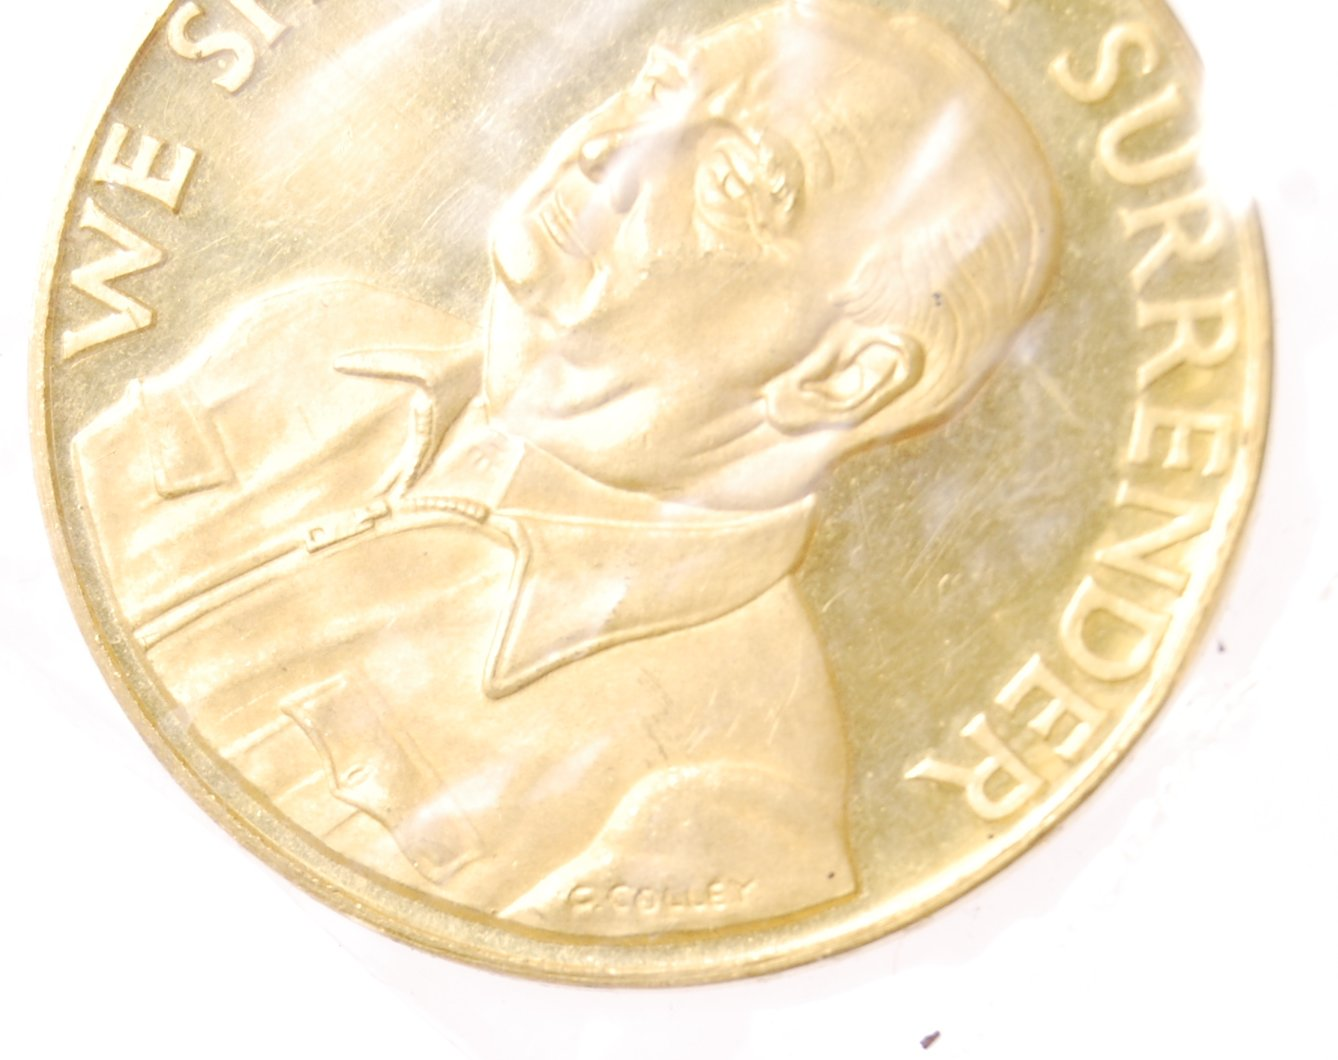 22CT GOLD 25TH ANNIVERSARY OF DUNKIRK COMMEMORATIVE COIN - Image 4 of 5